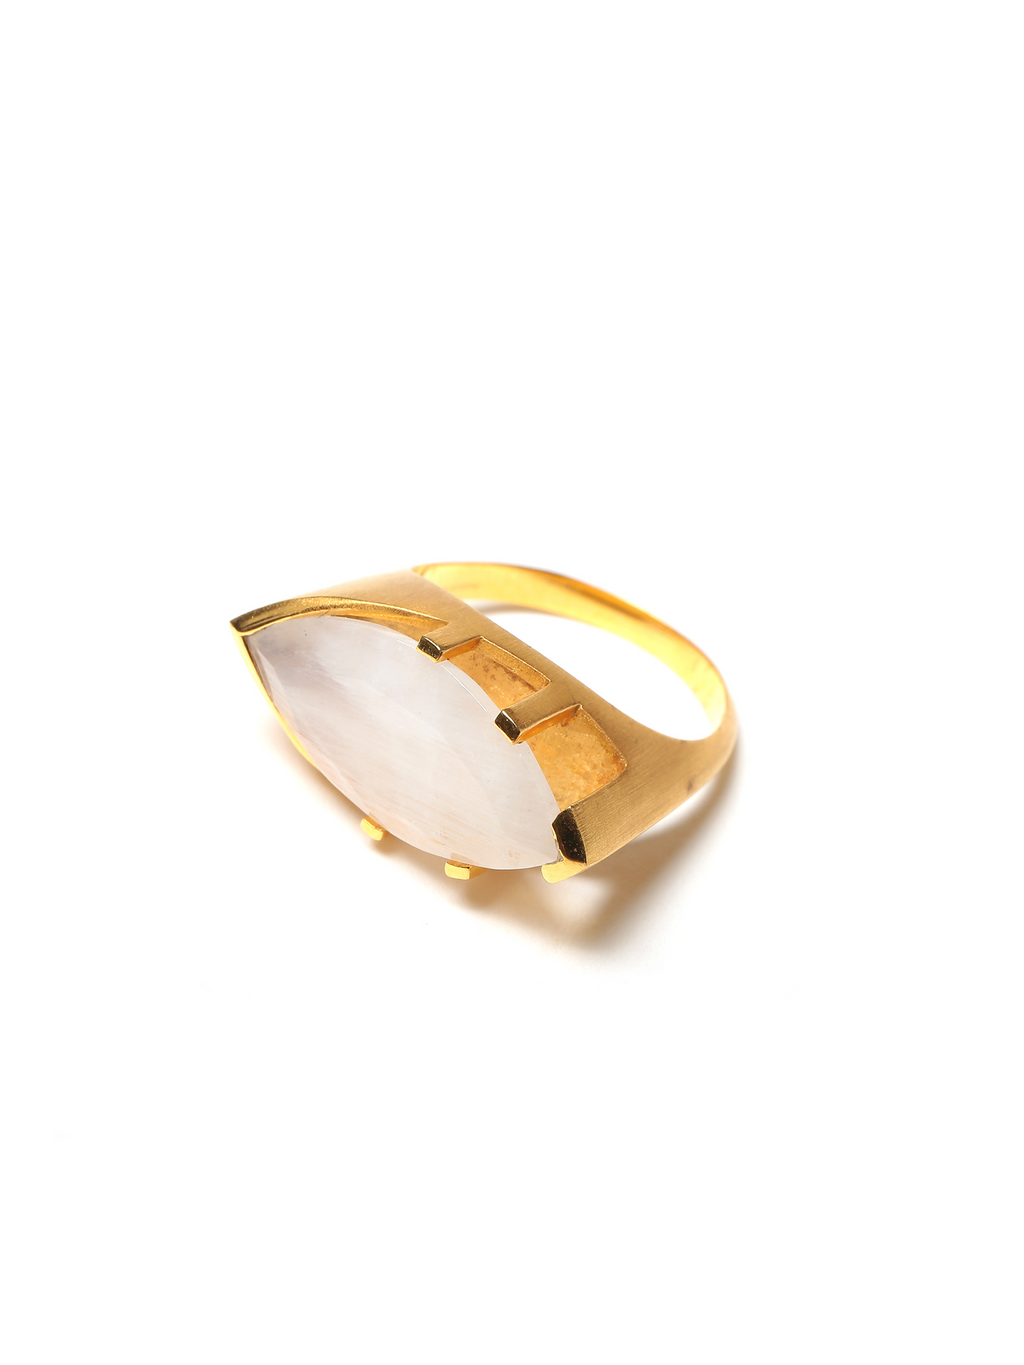 Dean Davidson Taj Gemstone Ring